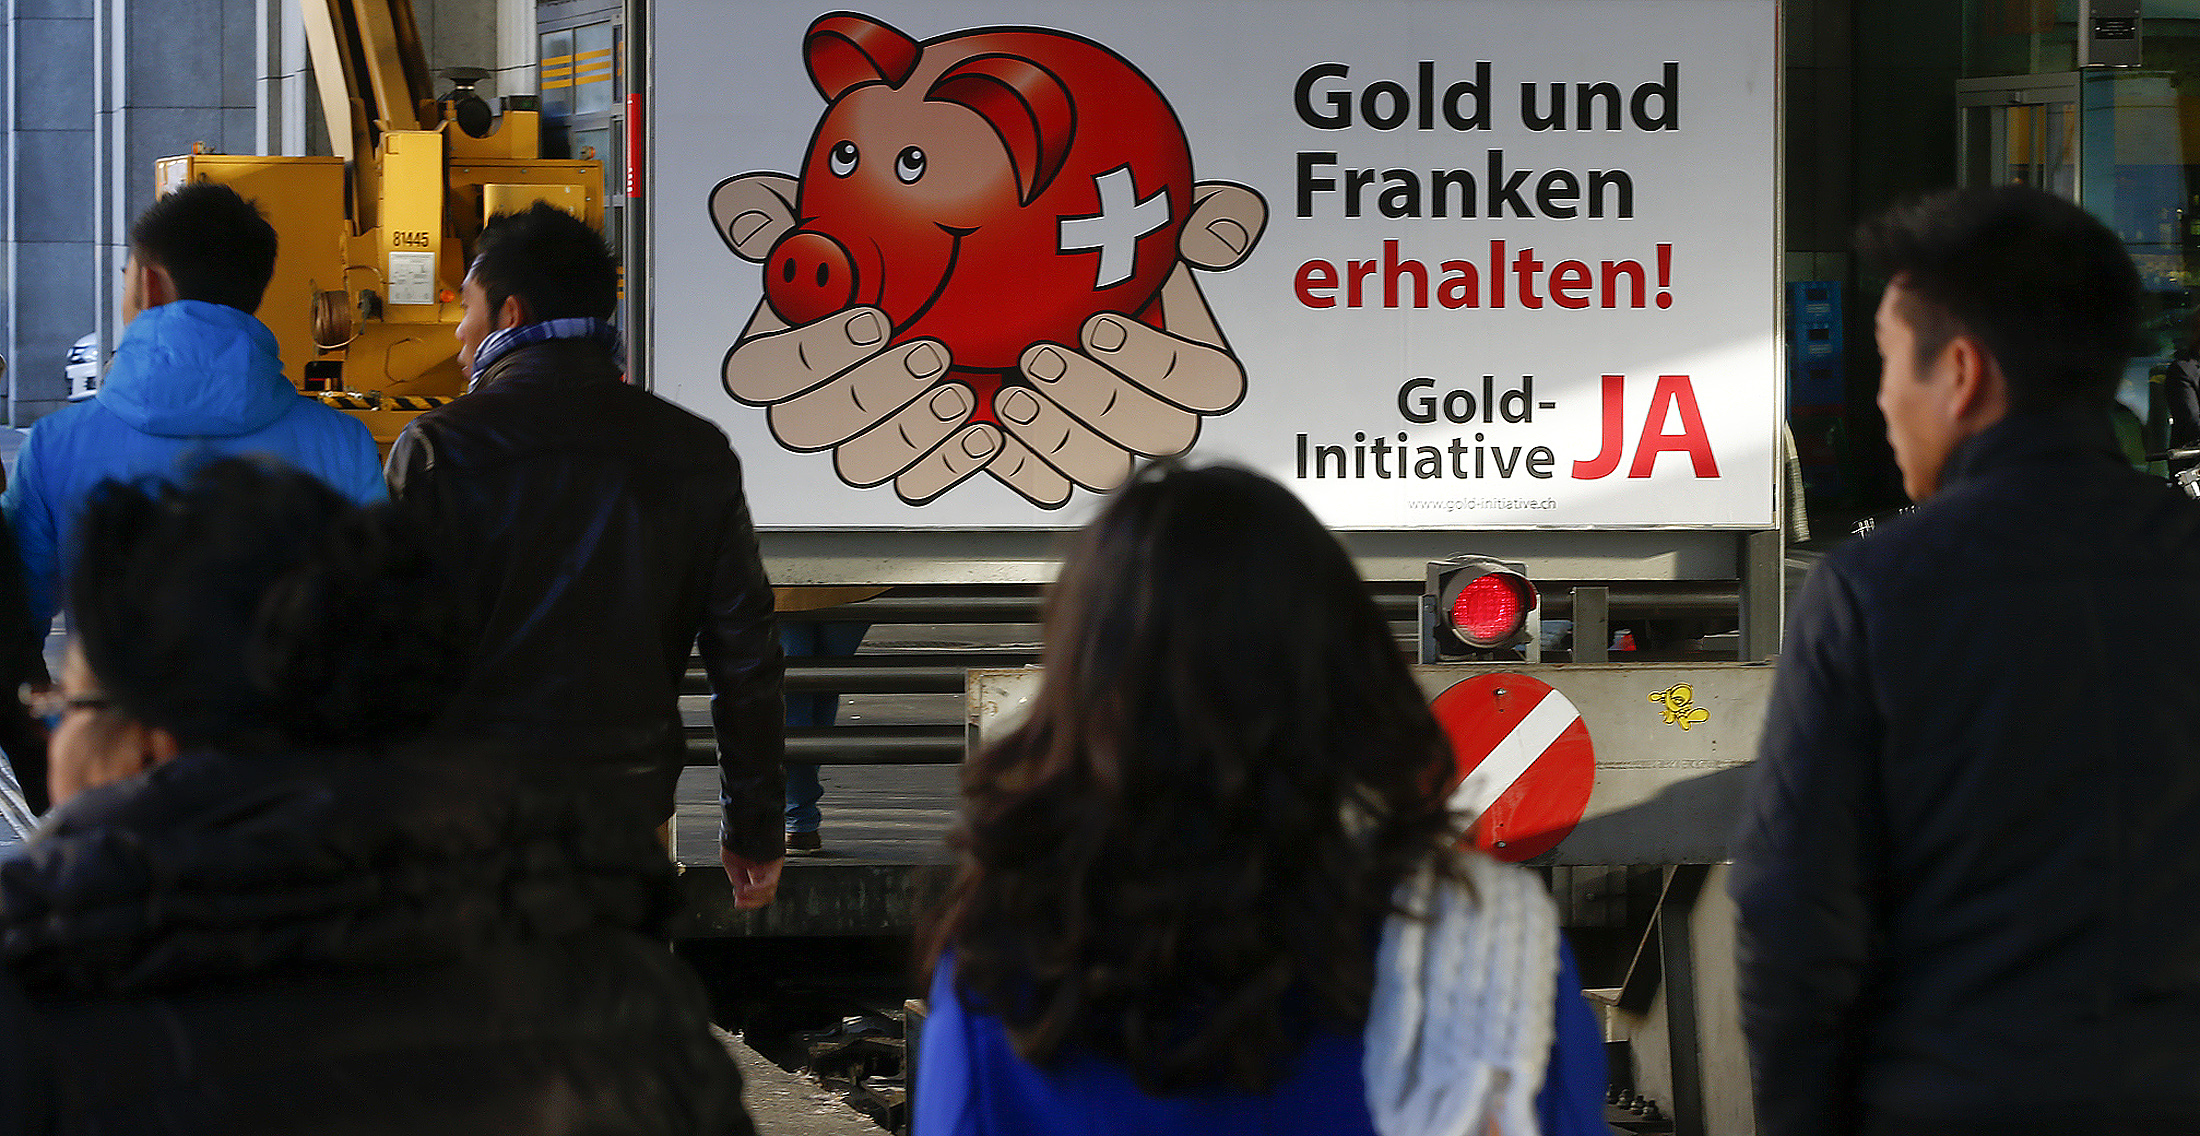 People walk in front of a banner for the gold initiative at the main train station in Zurich [Reuters]